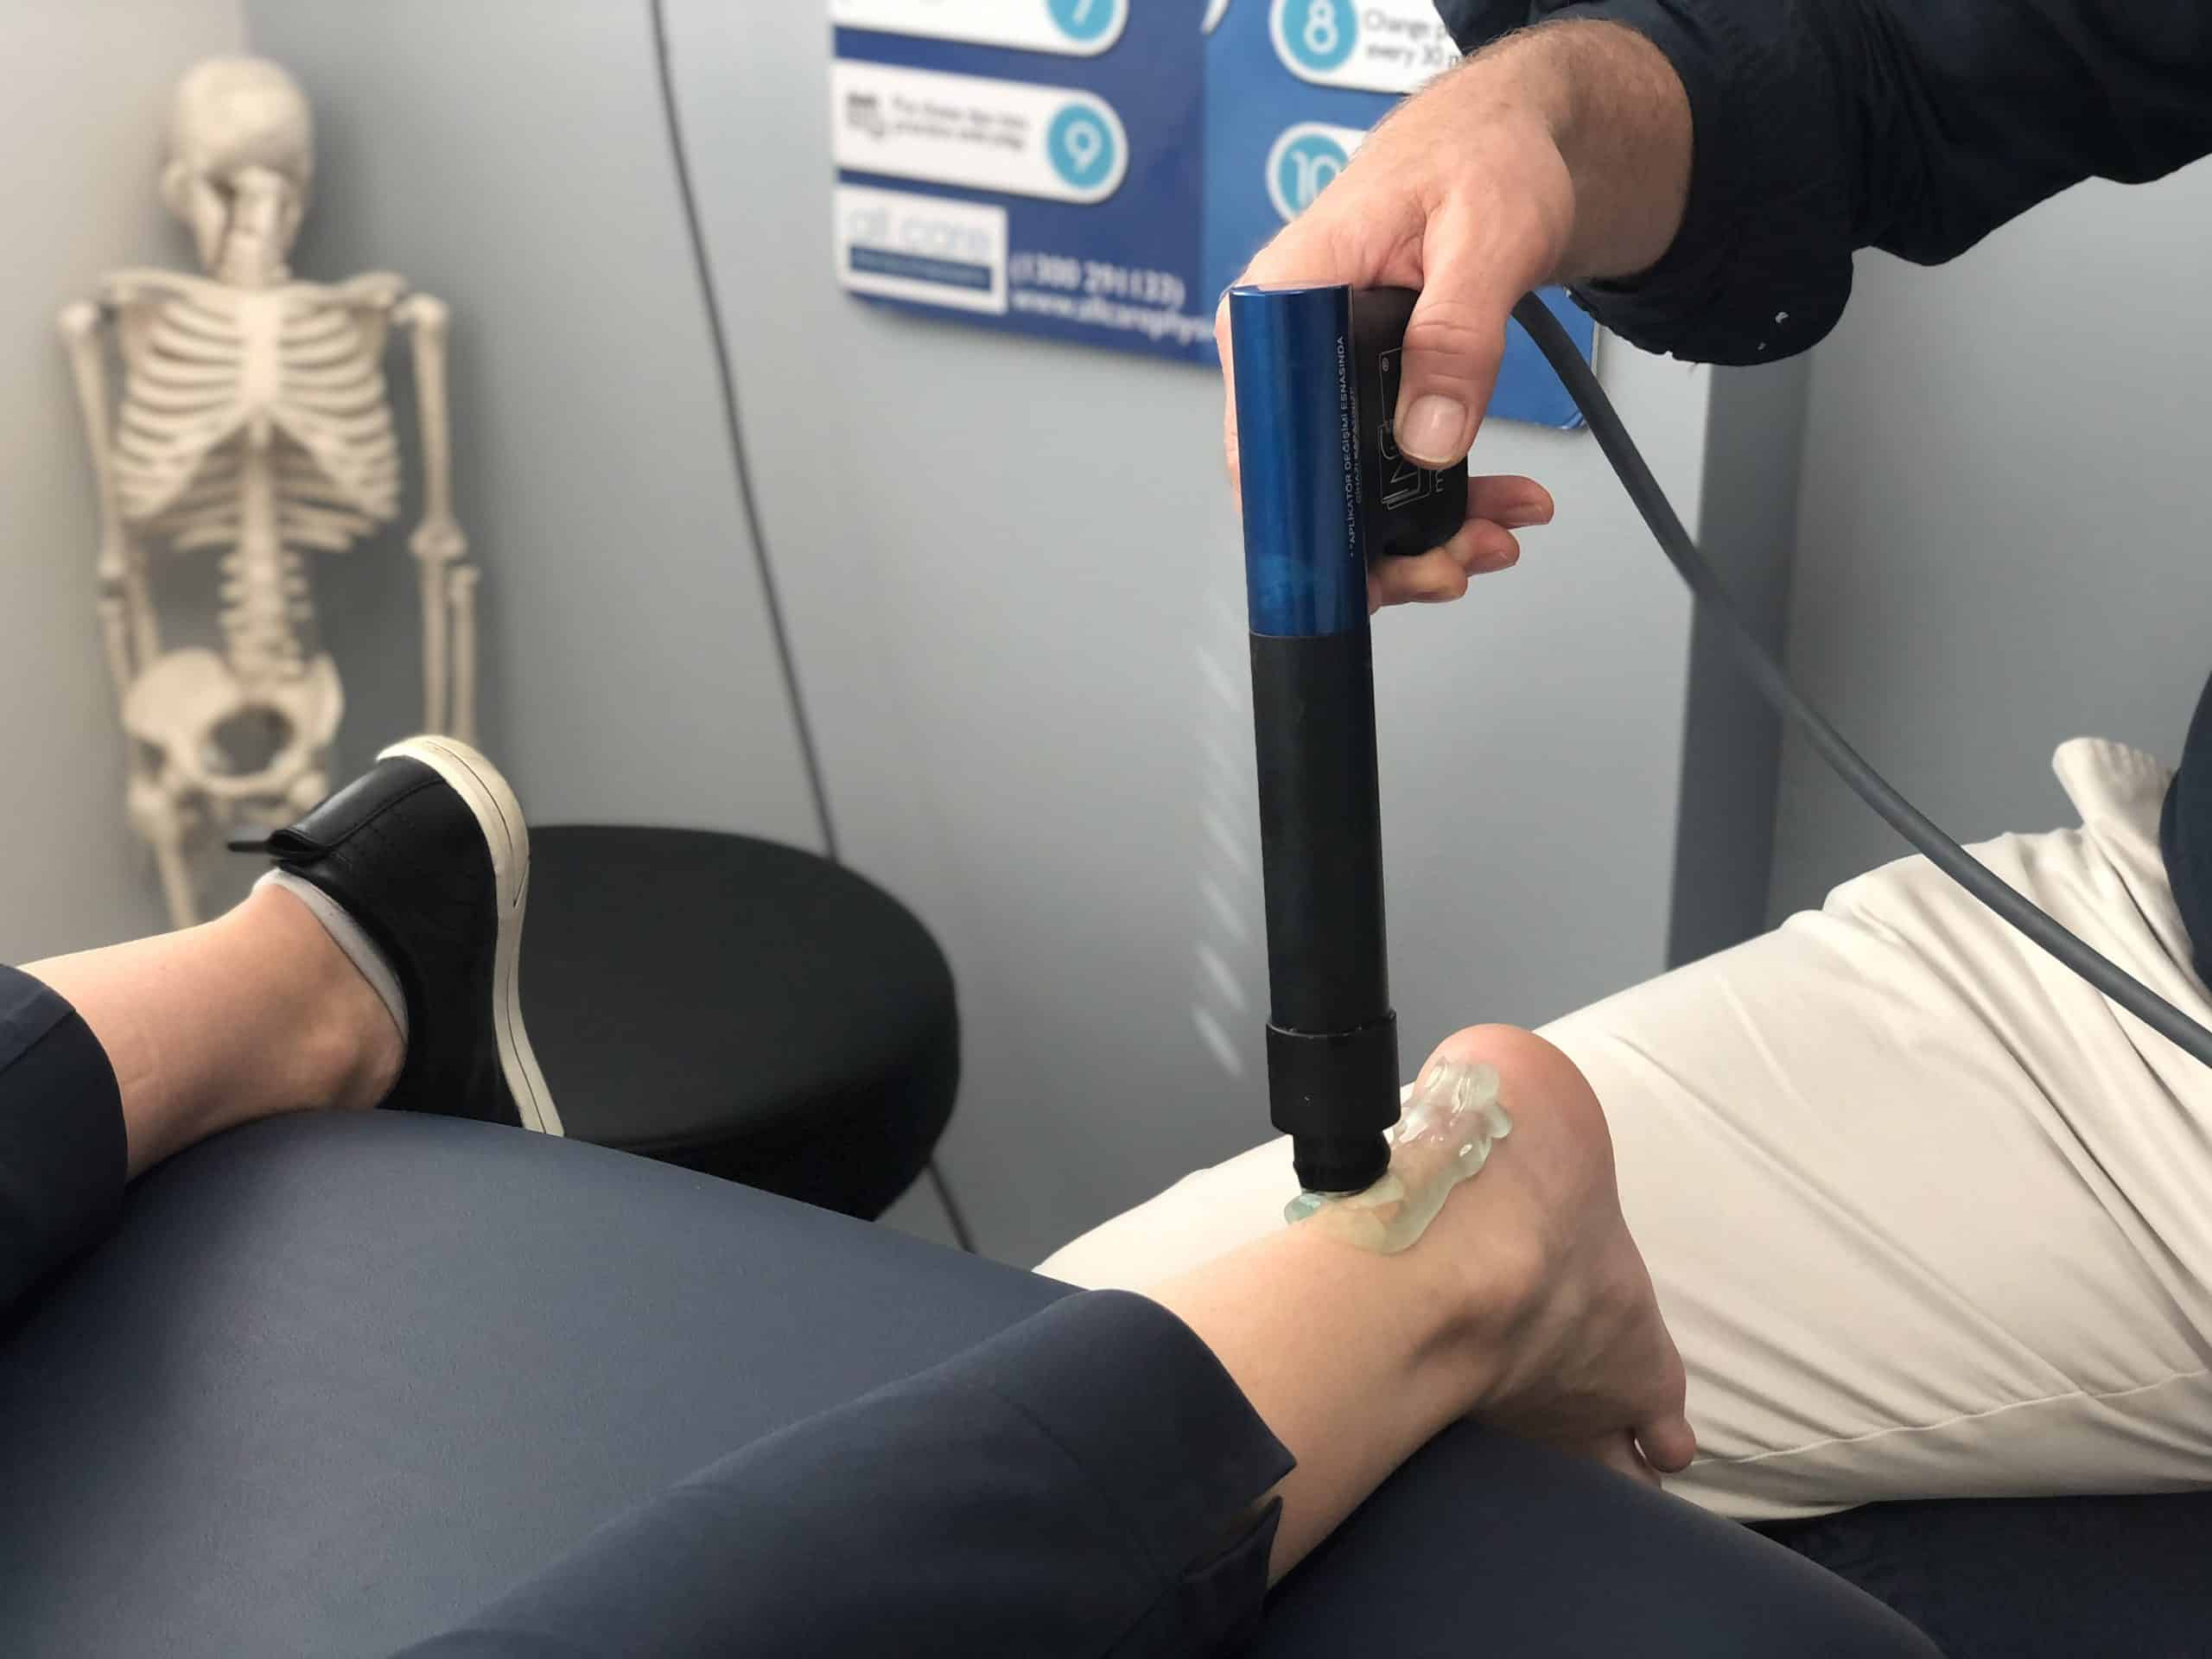 IMG 2344 scaled - Shockwave Therapy at All Care Physiotherapy